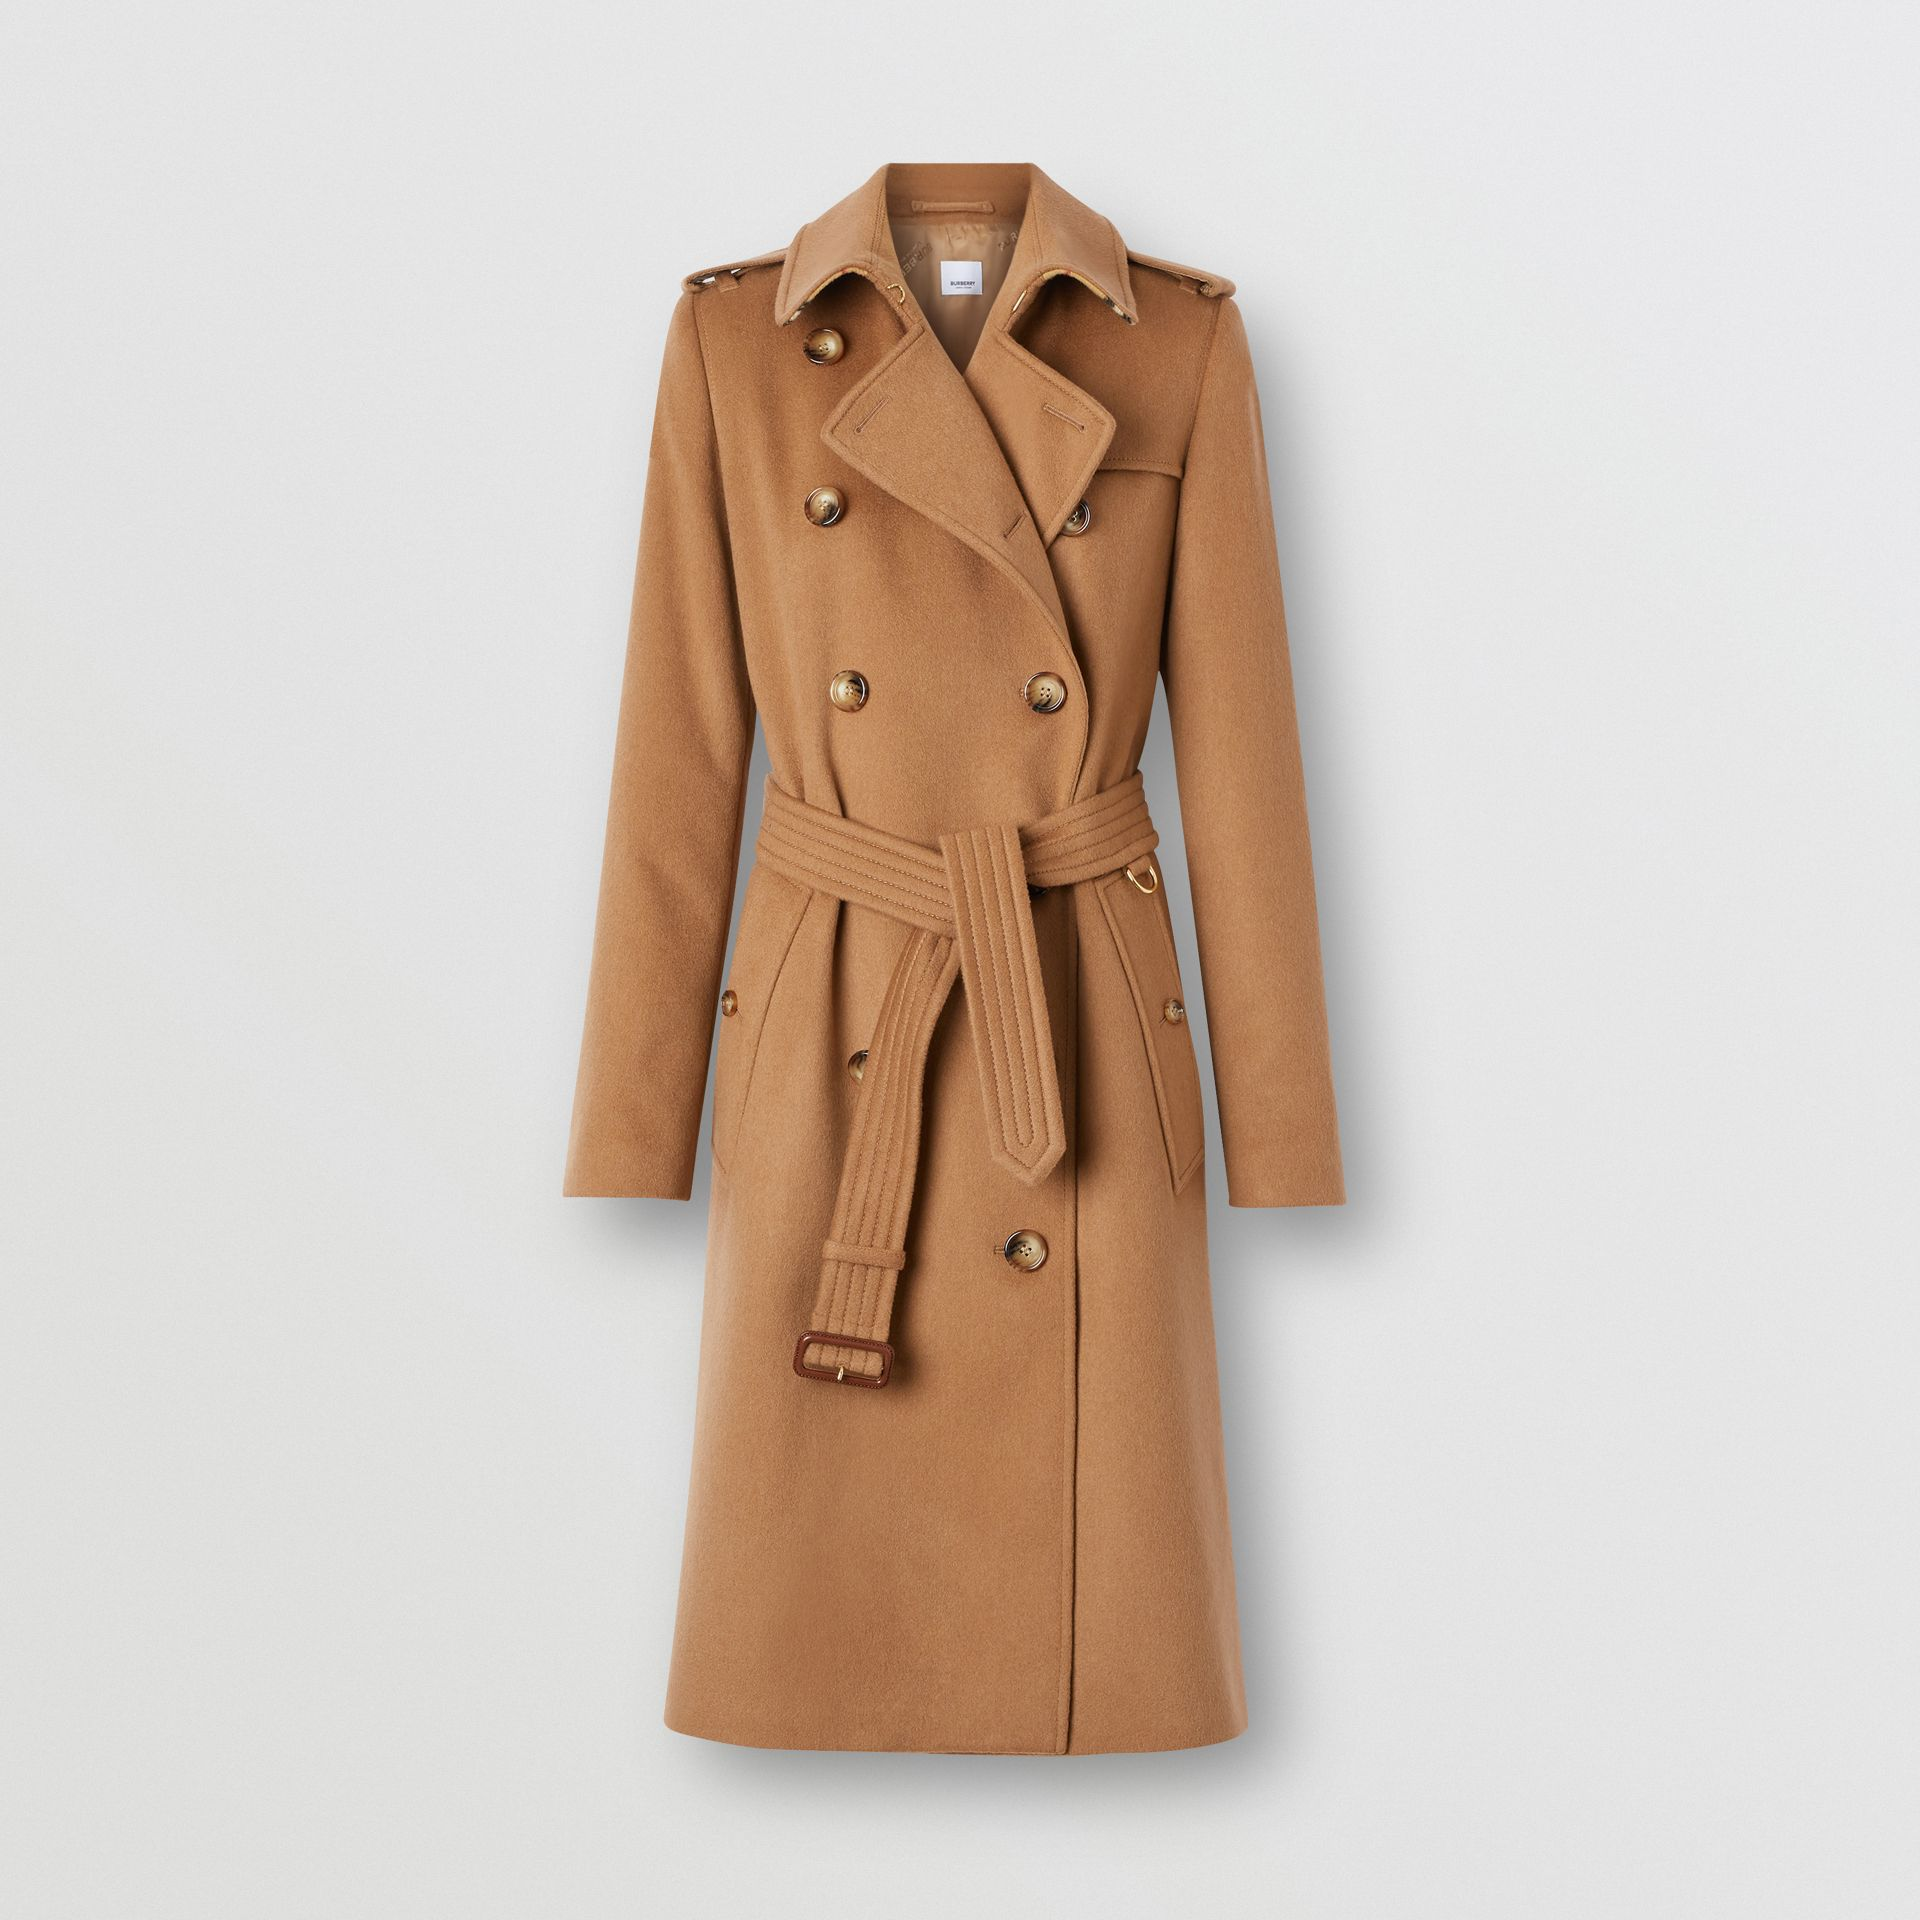 Cashmere Trench Coat in Bronze - Women | Burberry United Kingdom - gallery image 3